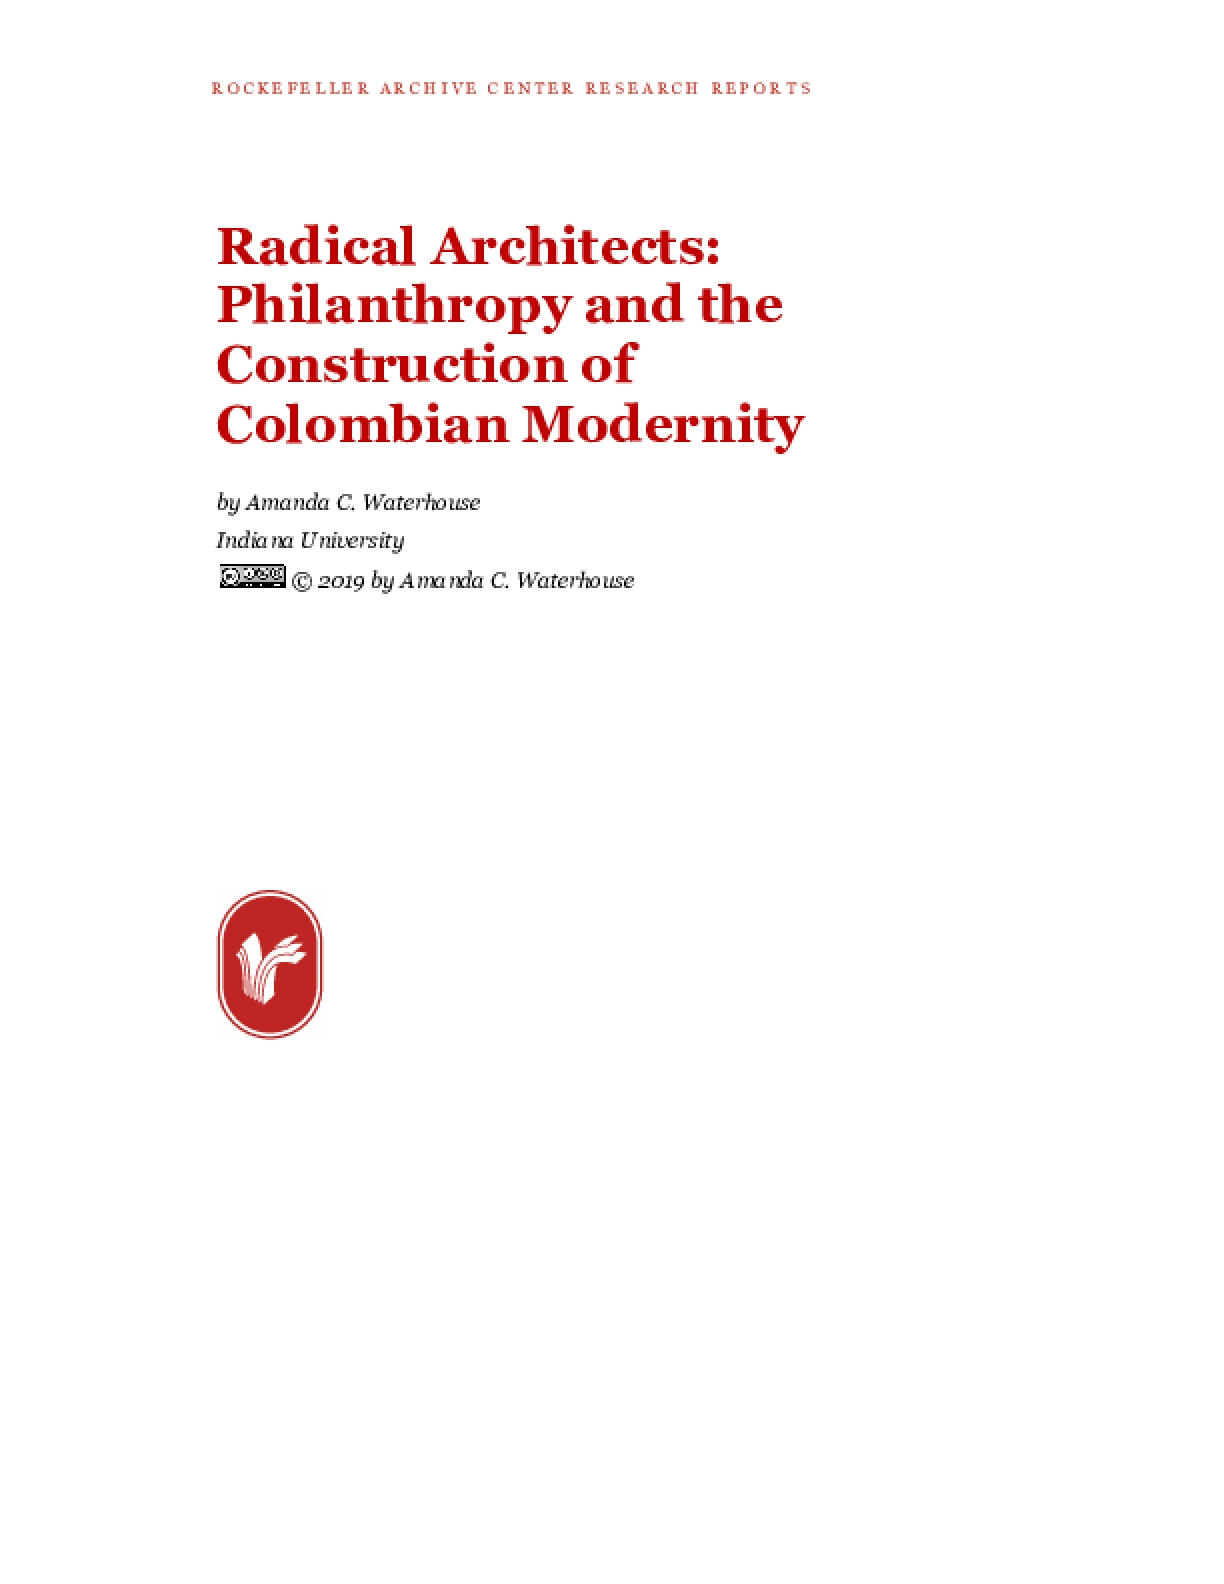 Radical Architects: Philanthropy and the Construction of Colombian Modernity